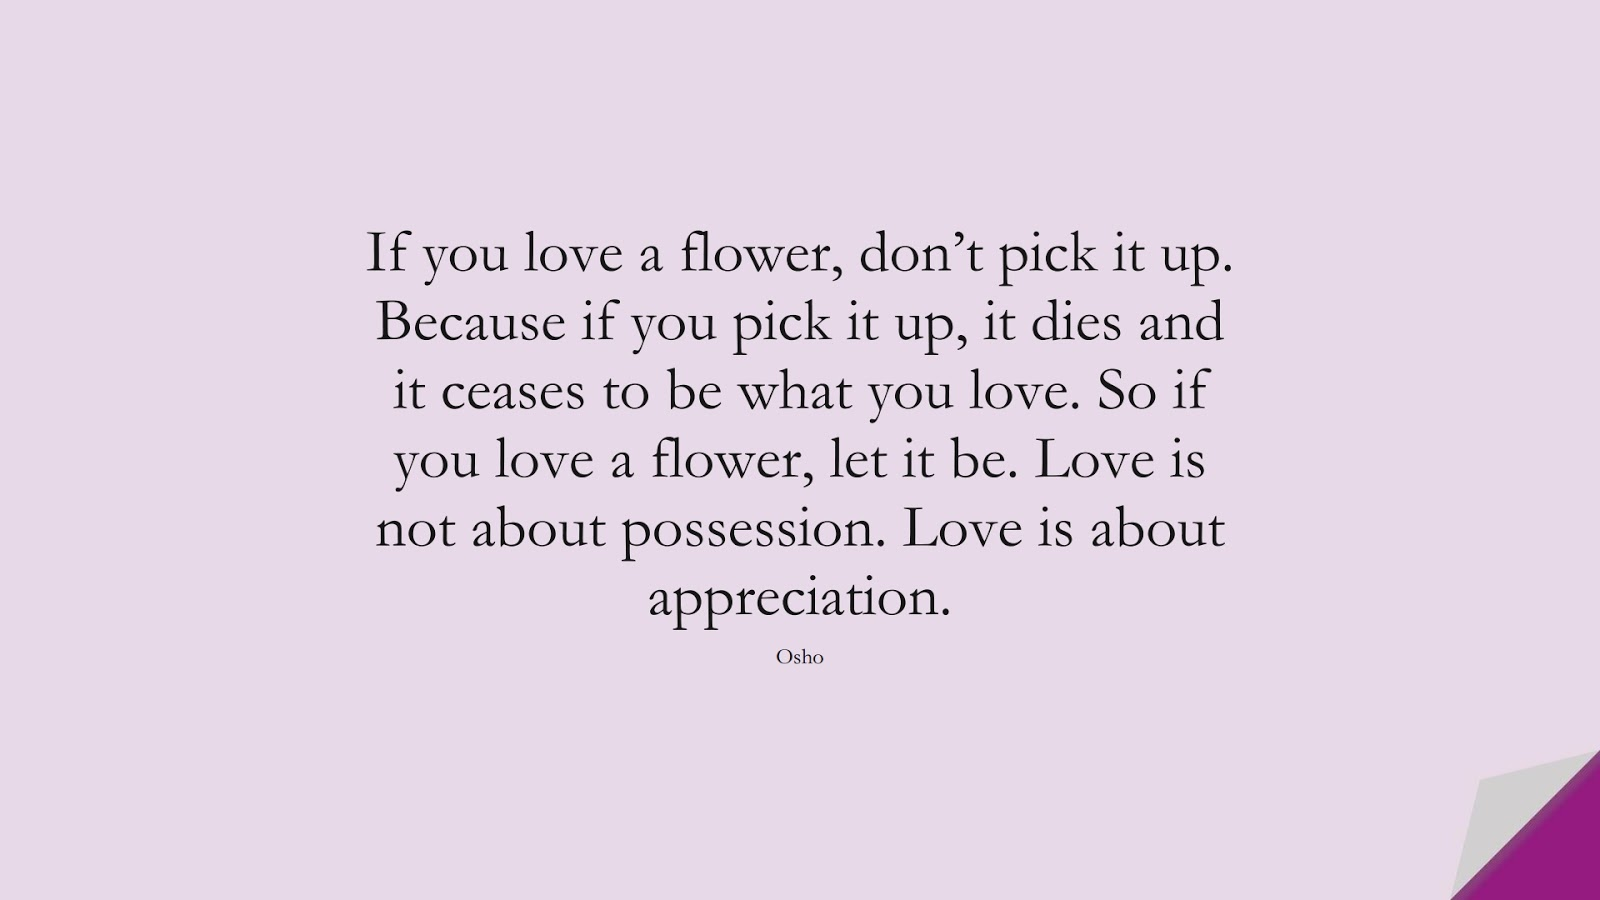 If you love a flower, don't pick it up. Because if you pick it up, it dies and it ceases to be what you love. So if you love a flower, let it be. Love is not about possession. Love is about appreciation. (Osho);  #RelationshipQuotes